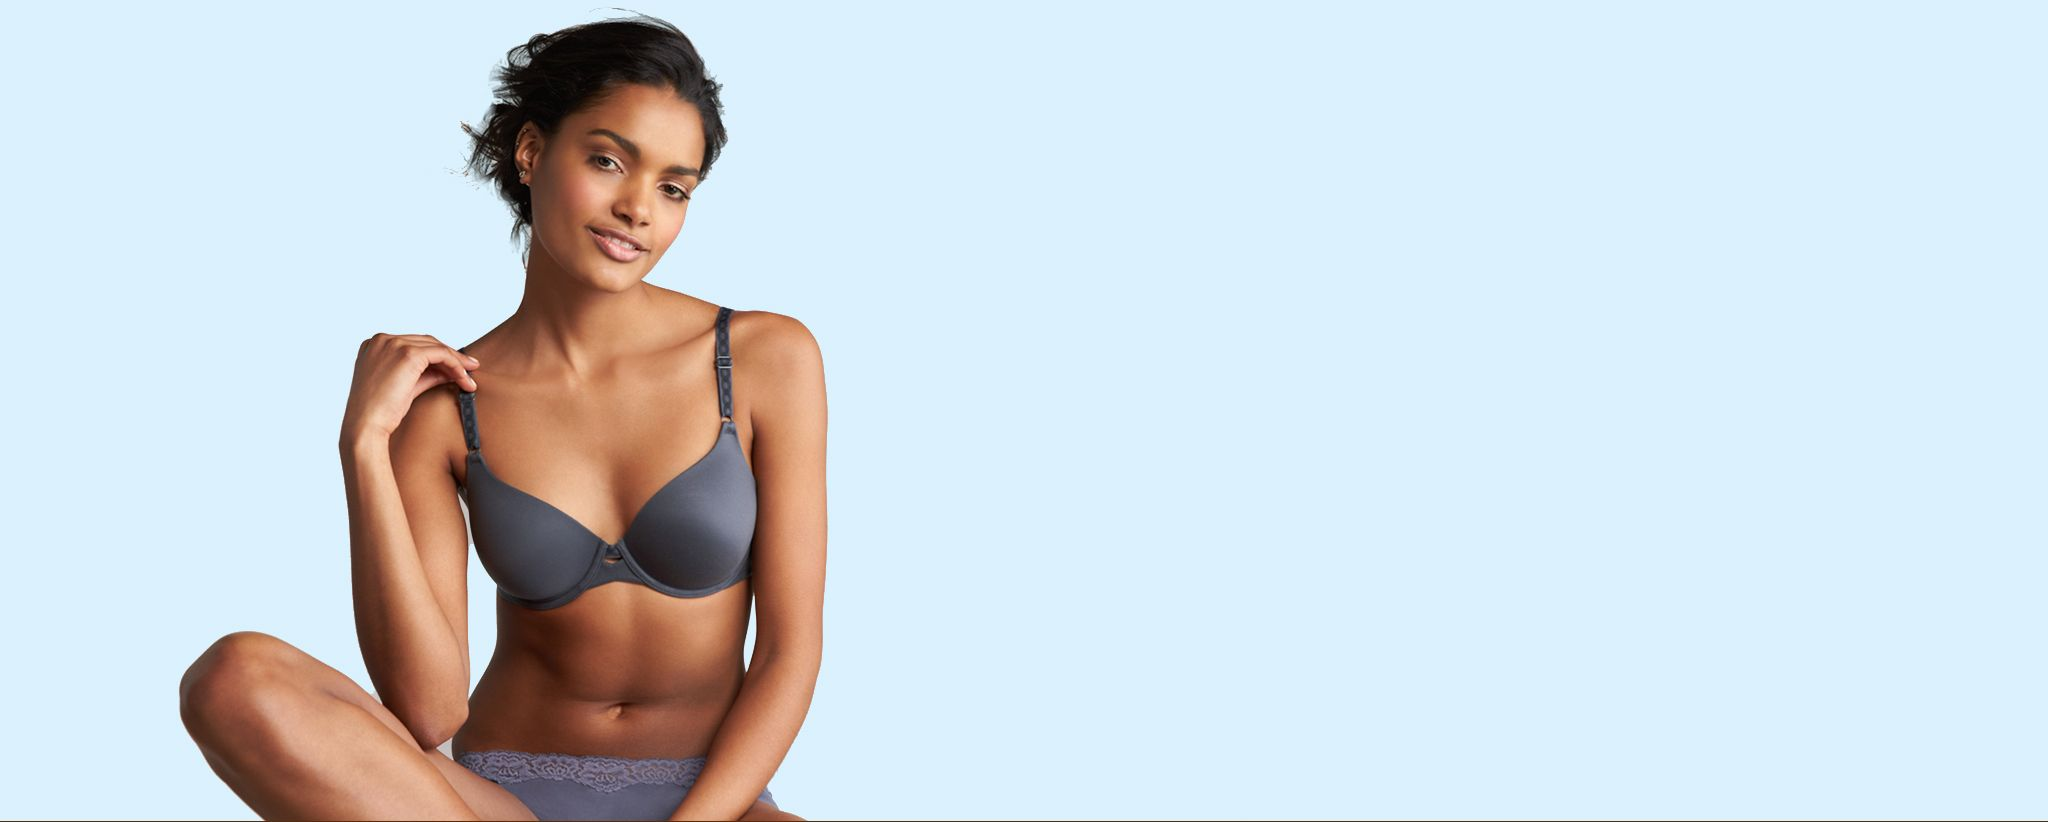 Bra Fitting: Bra Fit Guide & Free Bra Fitting | Kohl's